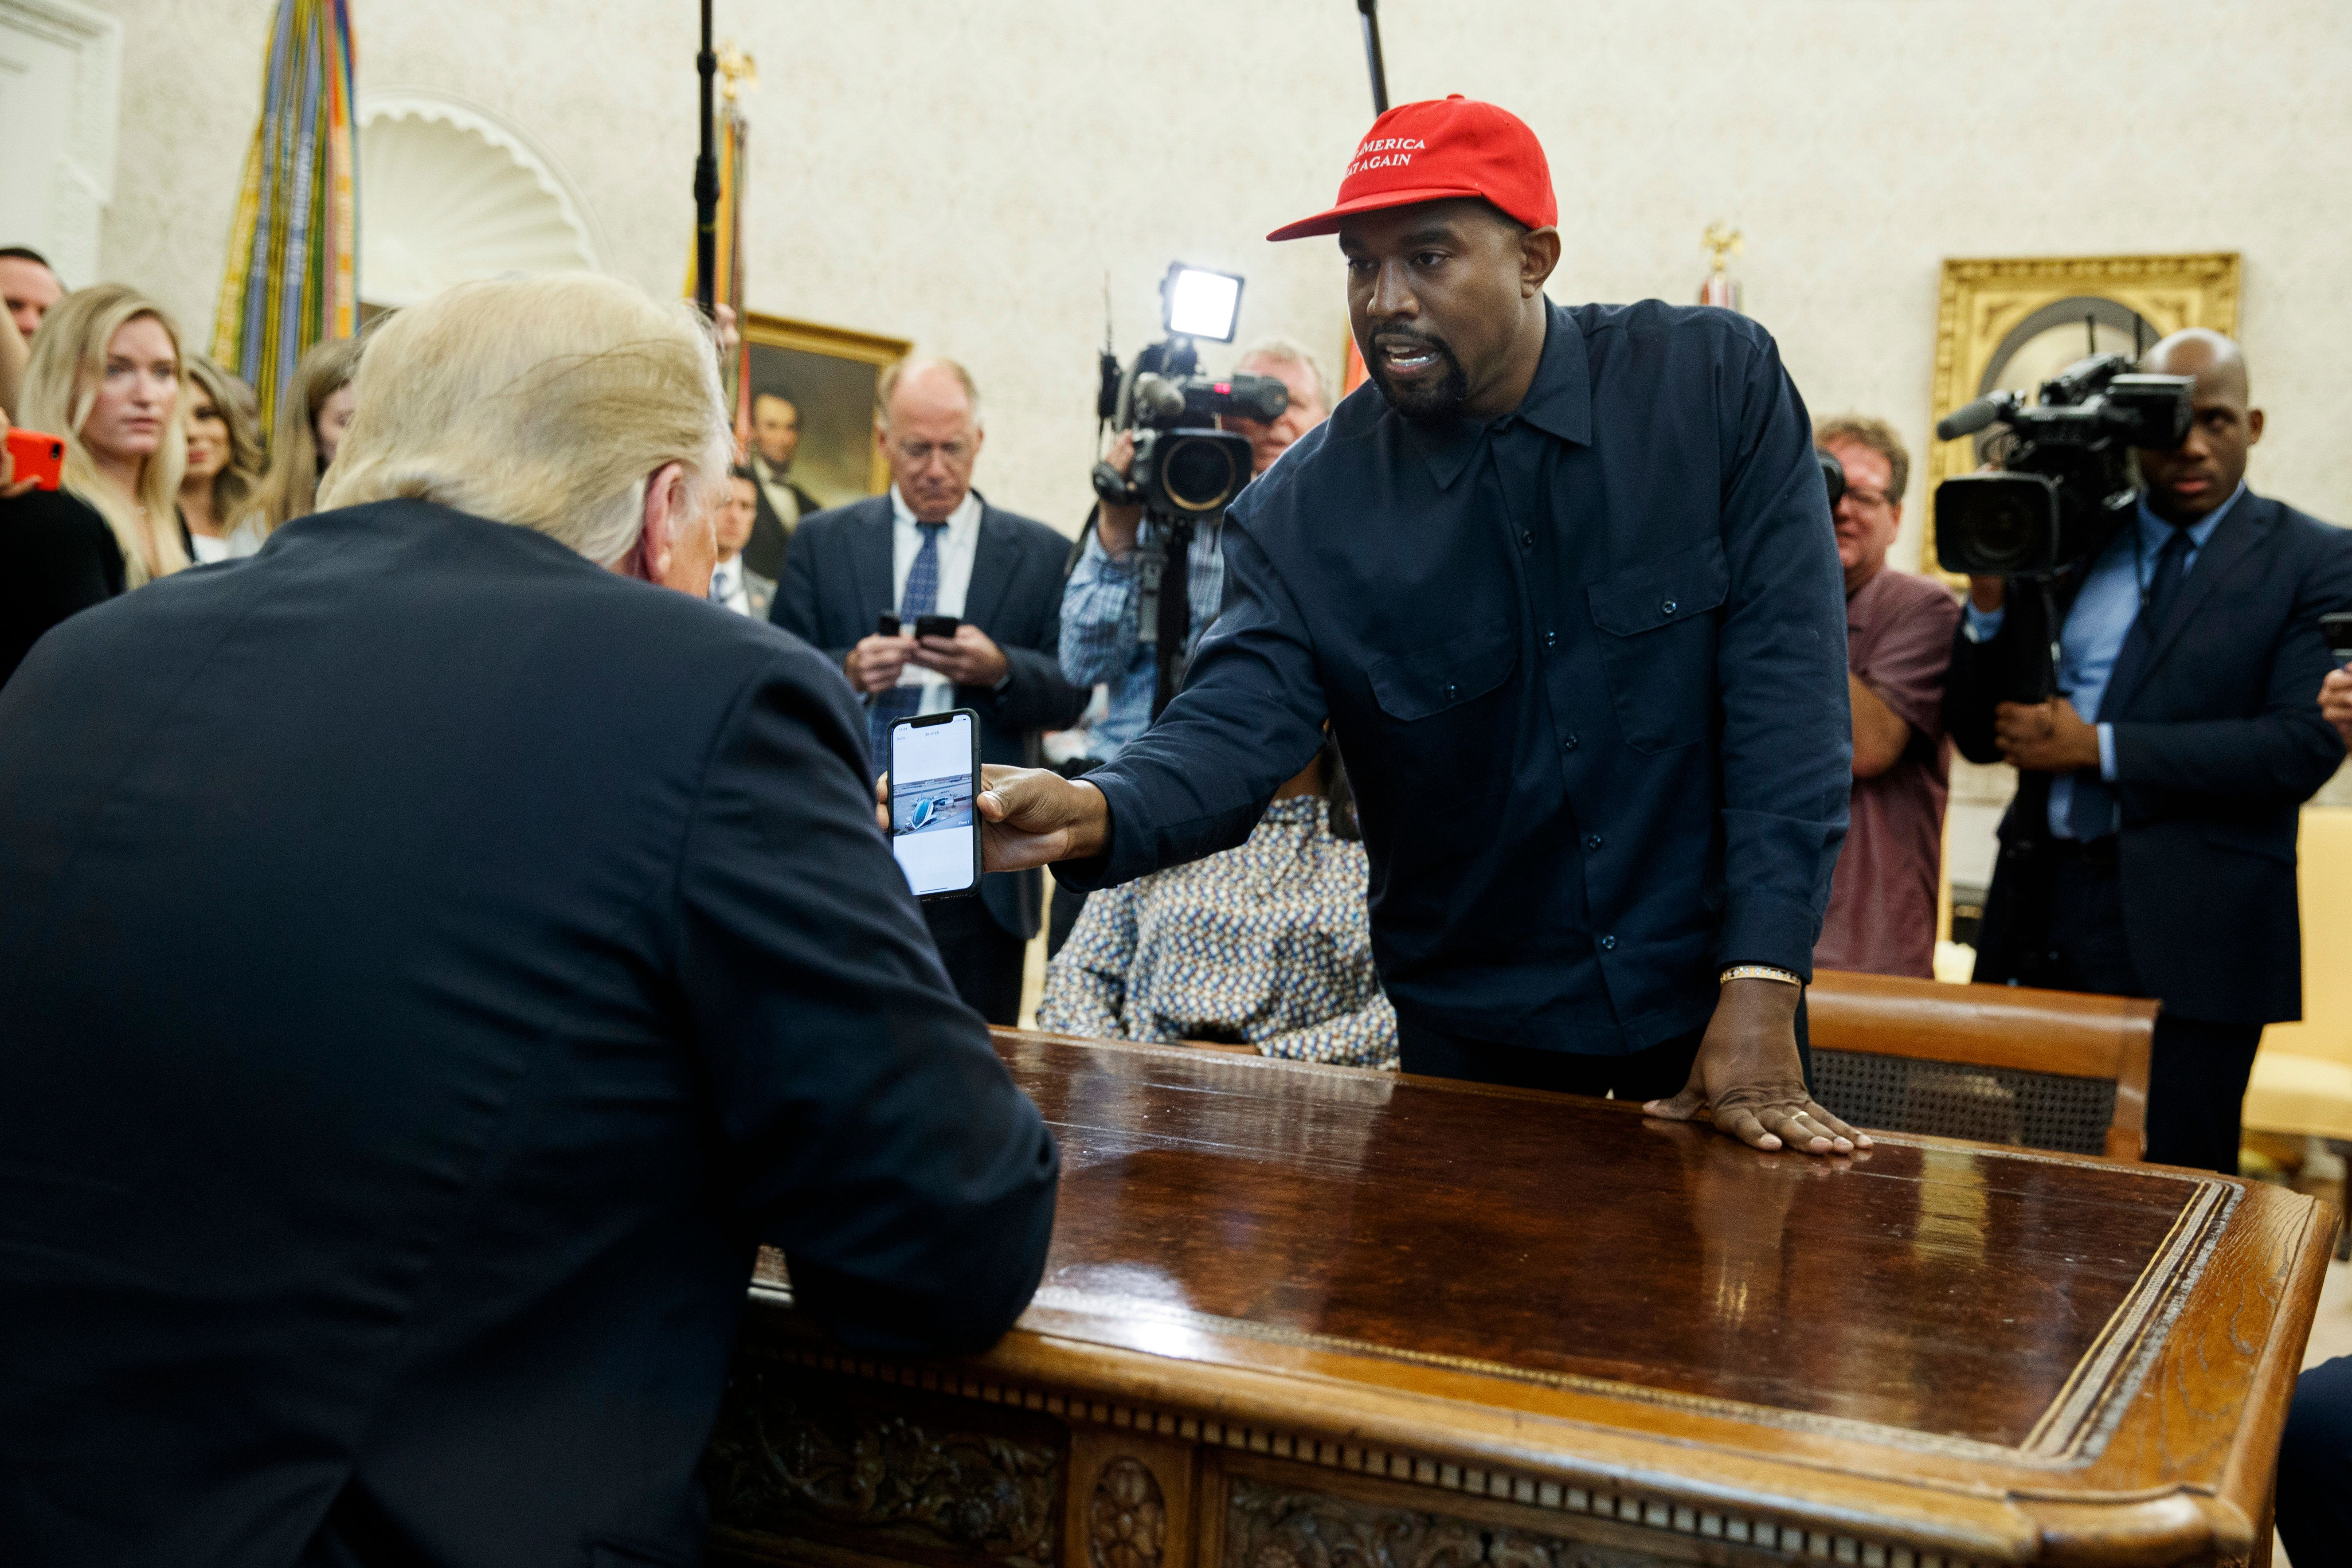 Donald Trump's Wild Meeting With Kanye West Sparks Even Wilder 'Photoshop Battle'